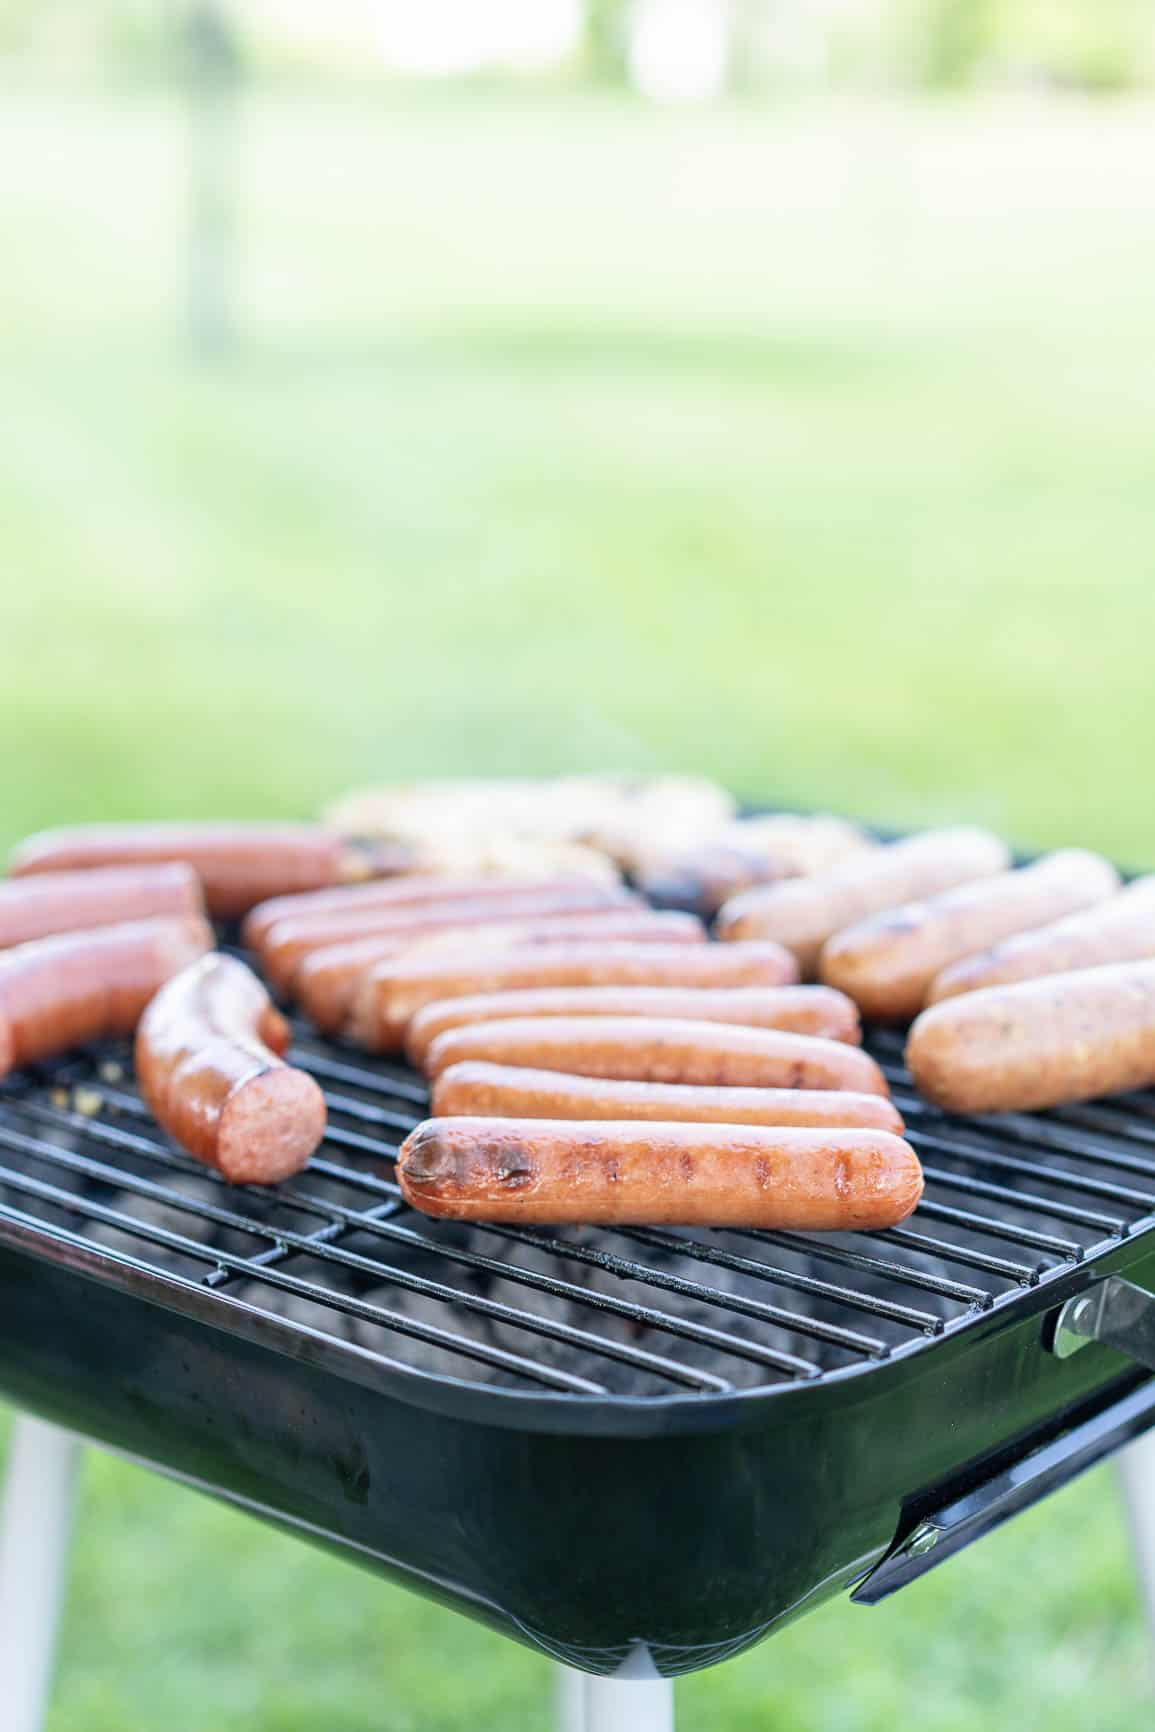 Charcoal grill with hot dogs, kielbasa, sausage and chicken on it.